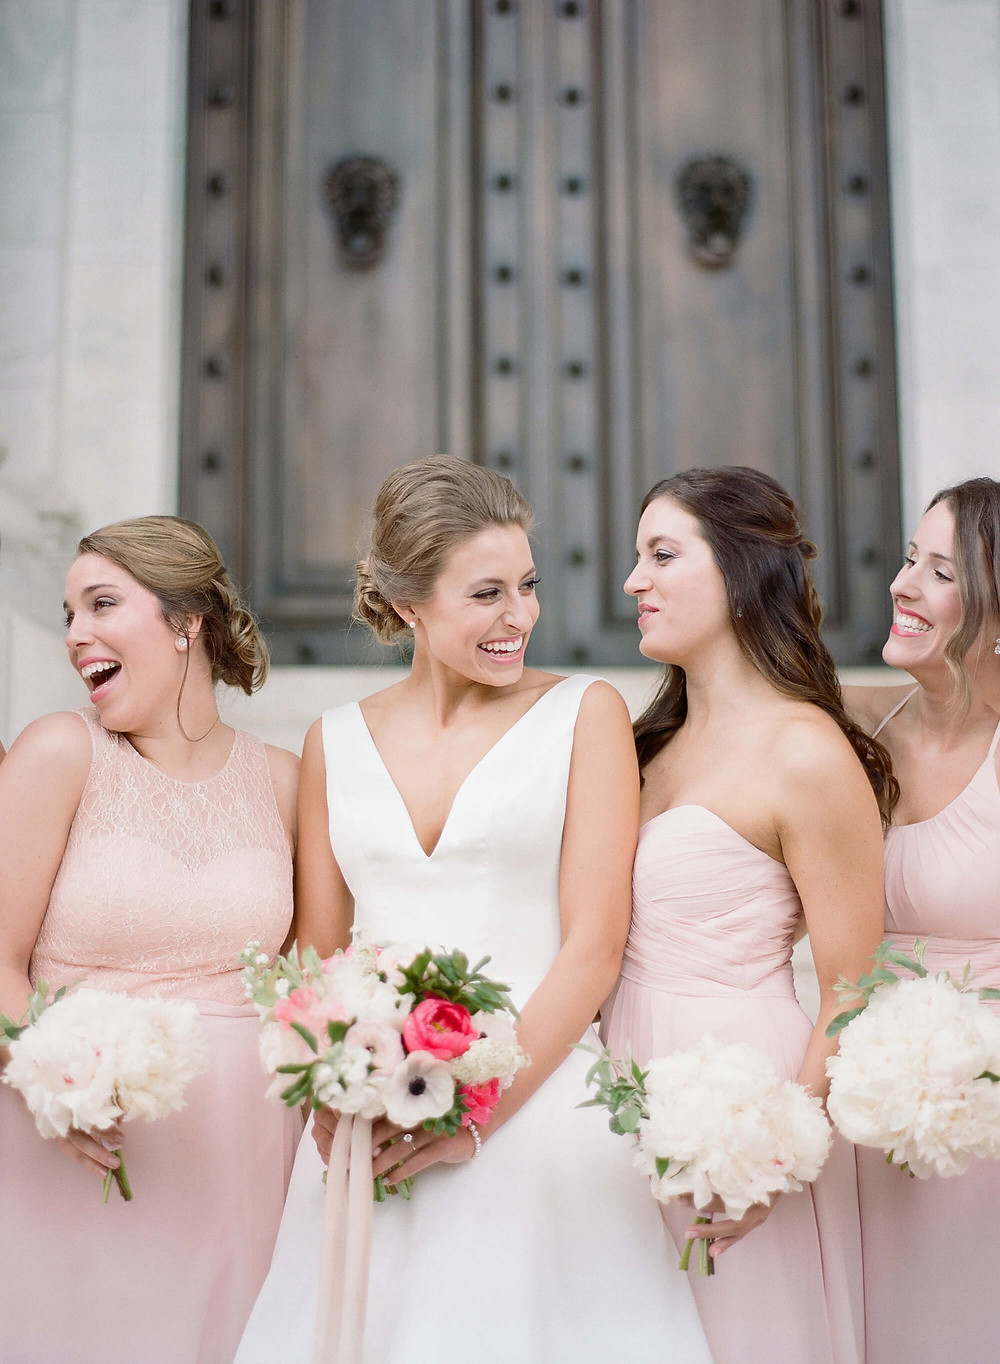 white and pink bridesmaids